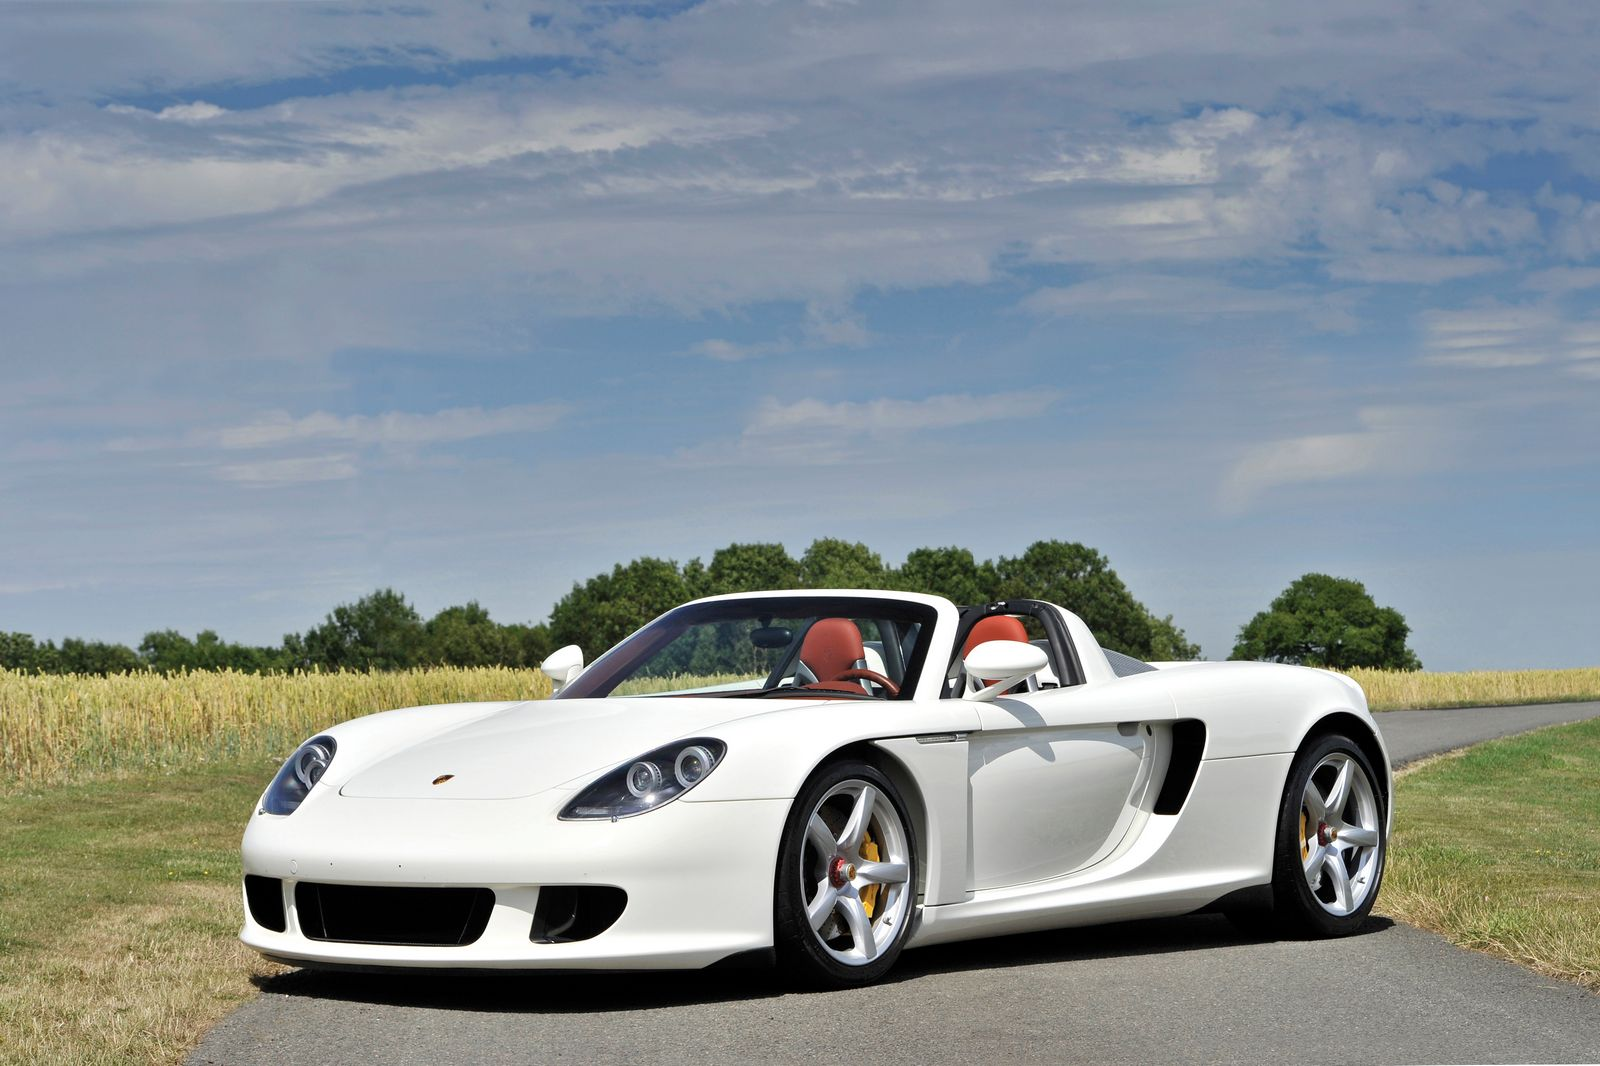 whimiscally white porsche carrera gt heading to auction gtspirit. Black Bedroom Furniture Sets. Home Design Ideas